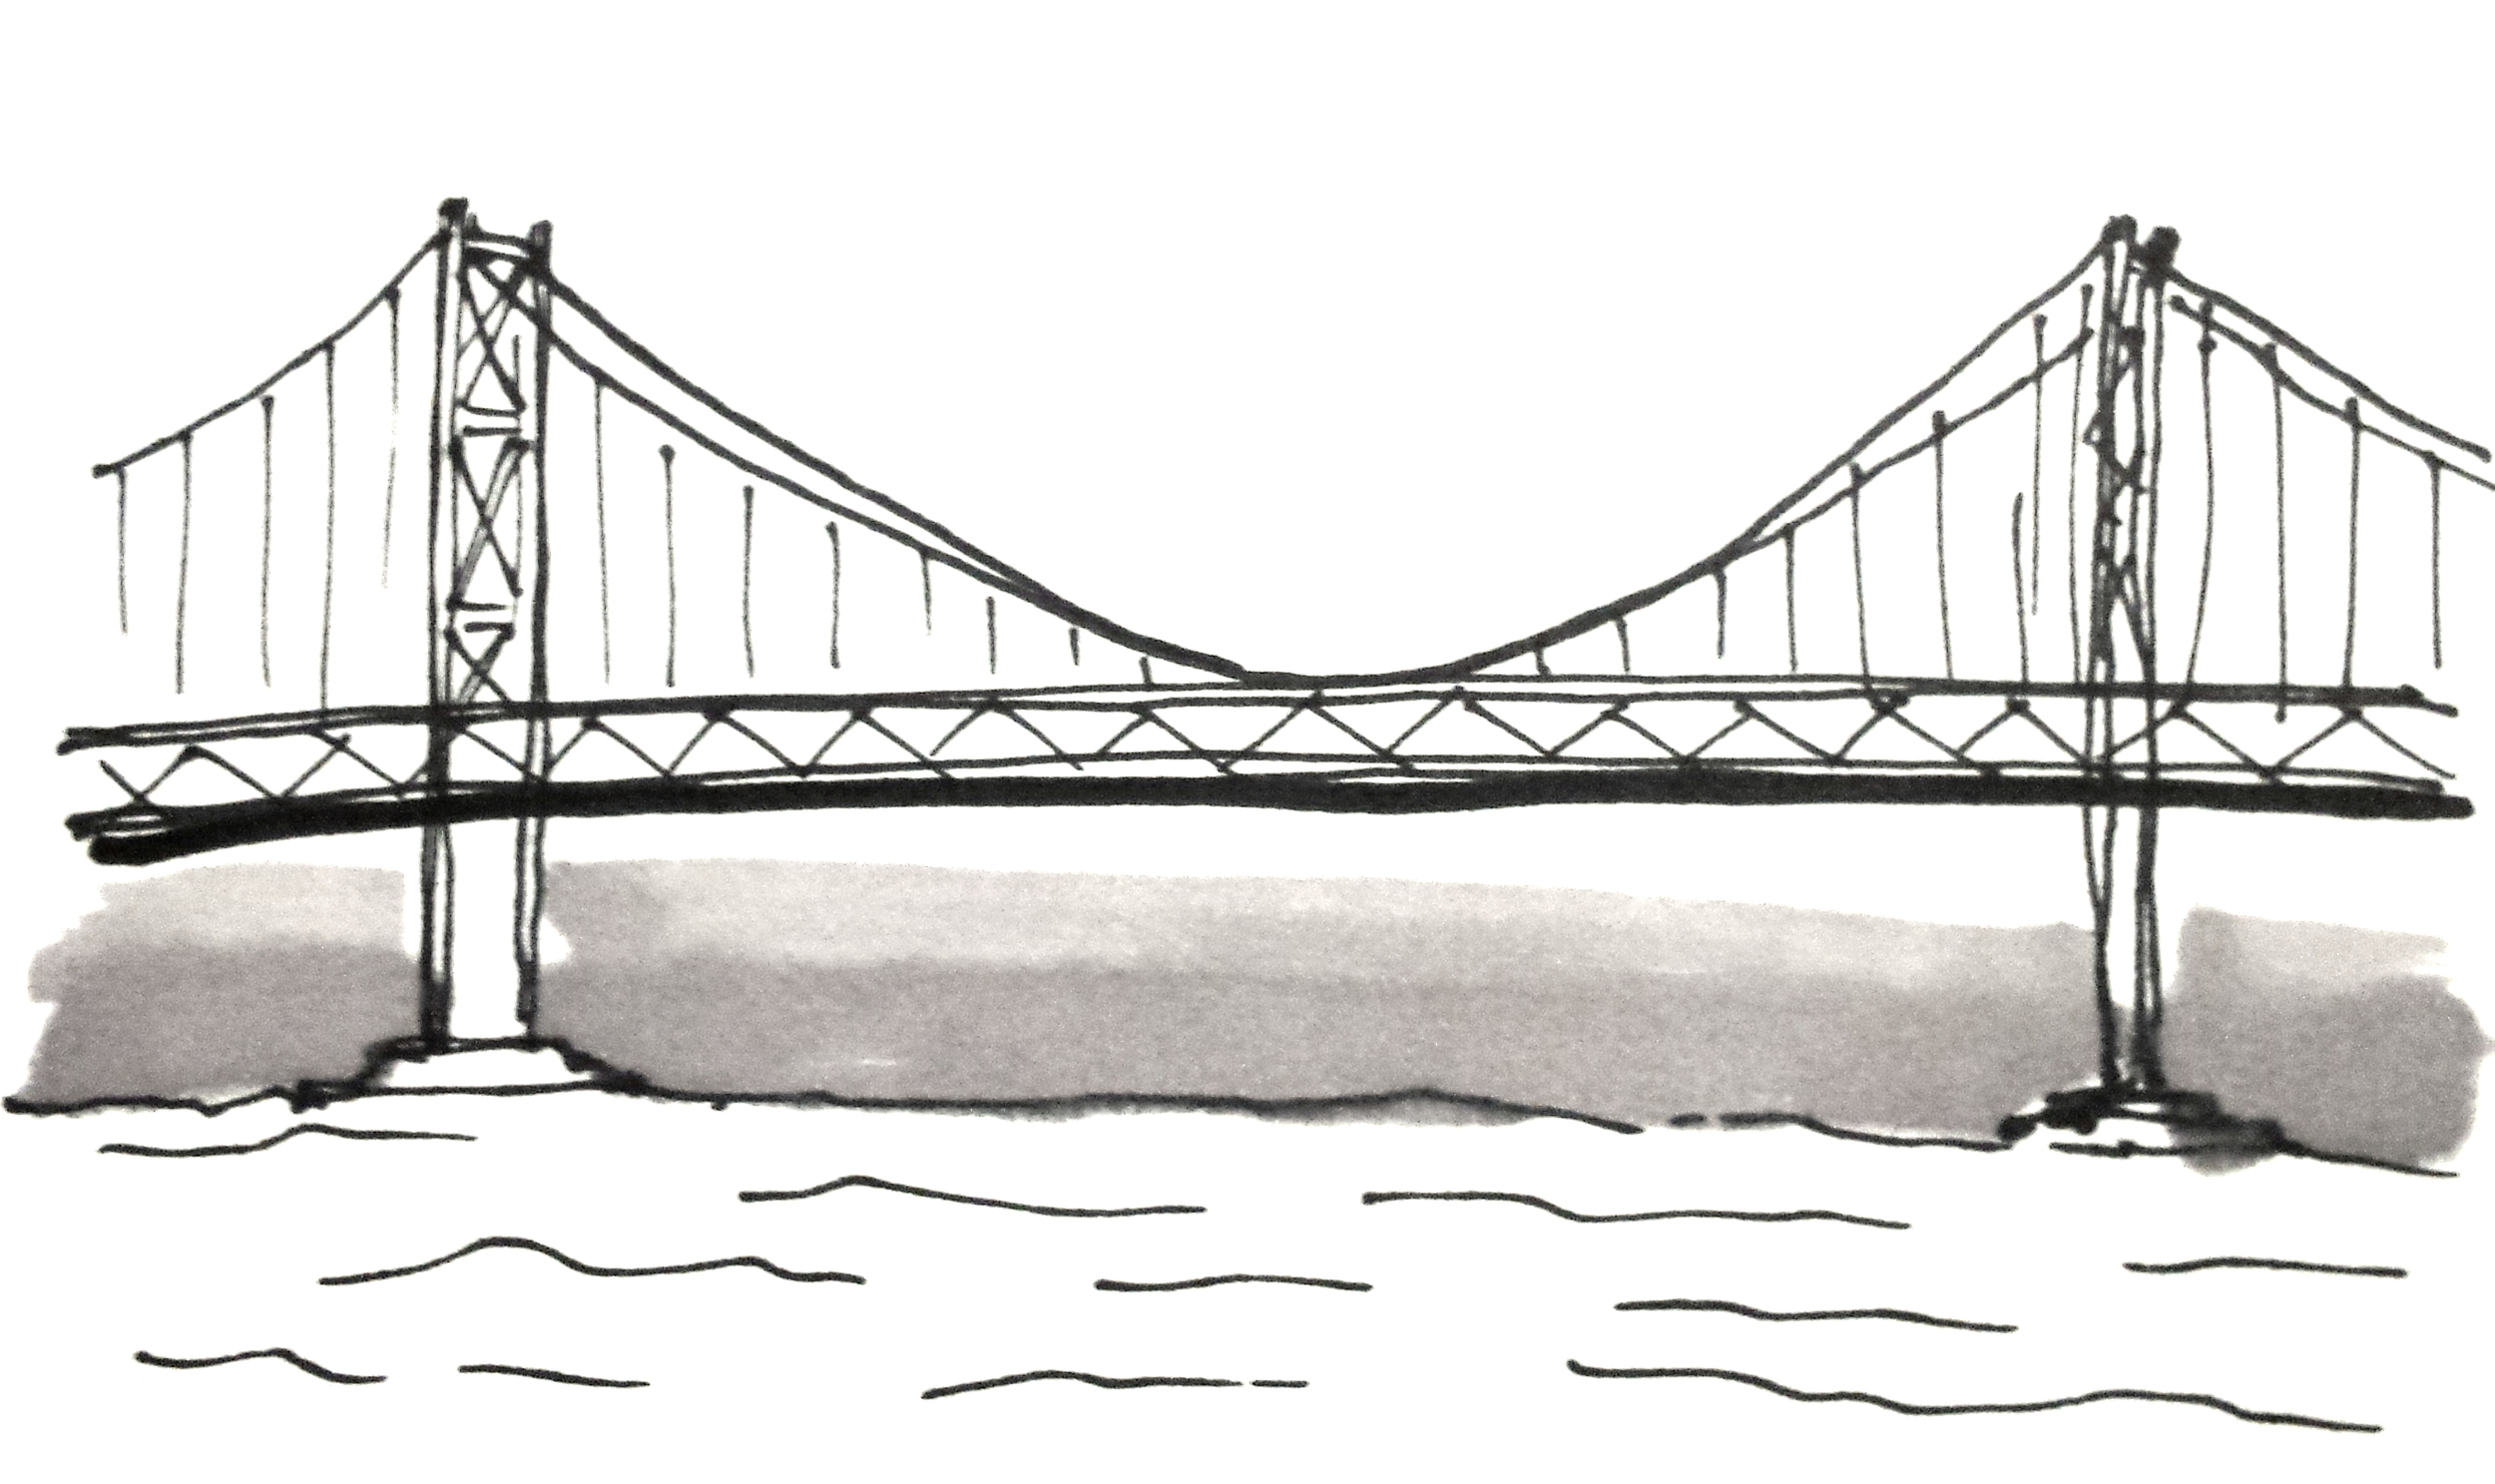 Bay Bridge looks a little like the Golden Gate. It has two levels. What else could differentiate it in a quick sketch?